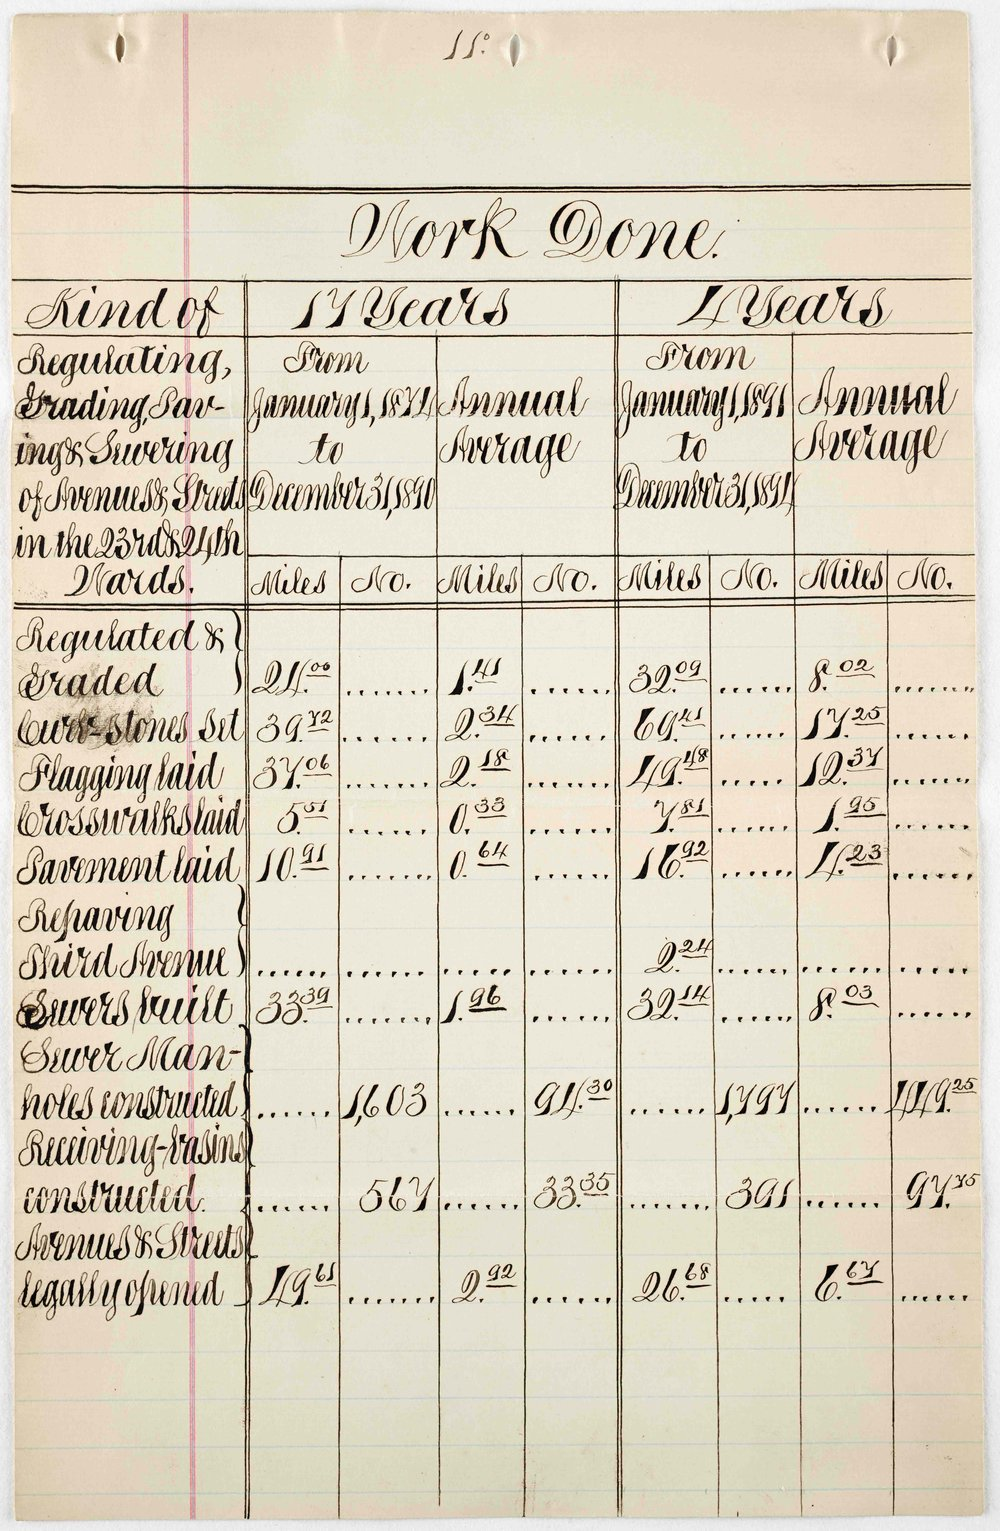 1890 spreadsheet submitted by Haffen to Mayor Grant, comparing improvements completed in the 23rd and 24th Wards while under the jurisdiction of the DPP between 1874-1890, and those done under the leadership of the Department of Street Improvements, from 1891-1894. These numbers show how the Bronx territory benefited from a more localized government infrastructure. Mayor Hugh J. Grant Subject Files.